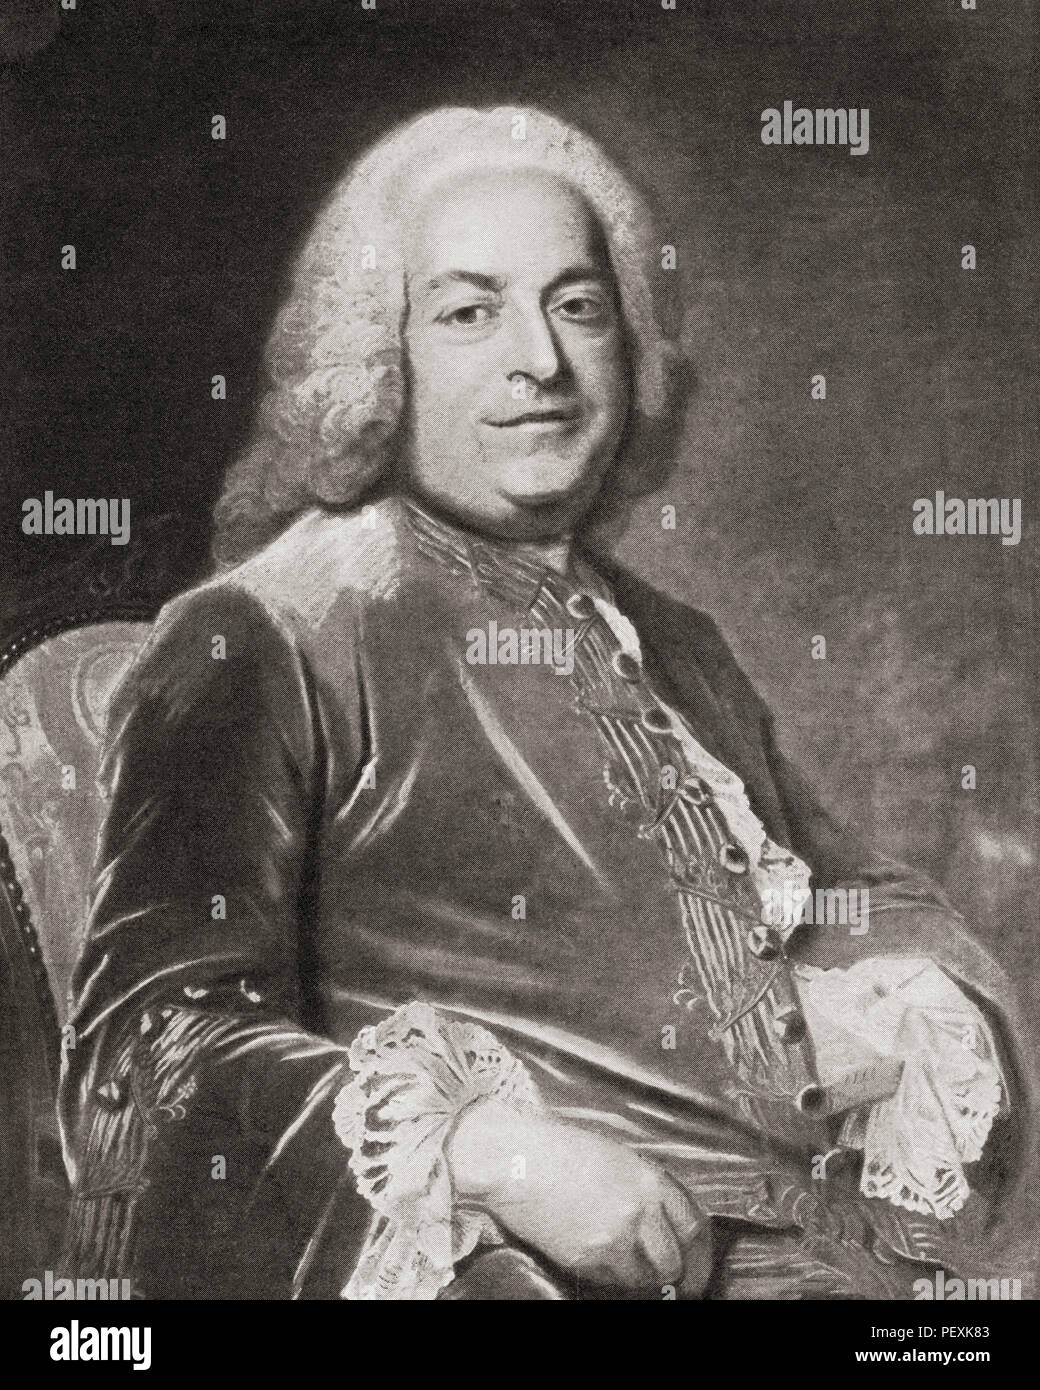 Antoine Gaspard Grimod de La Reynière, 1687 - 1754.  French financier.  After a work by French Rococo portraitist, Maurice Quentin de La Tour, (1704 – 1788).  From La Tour, published 1920. - Stock Image